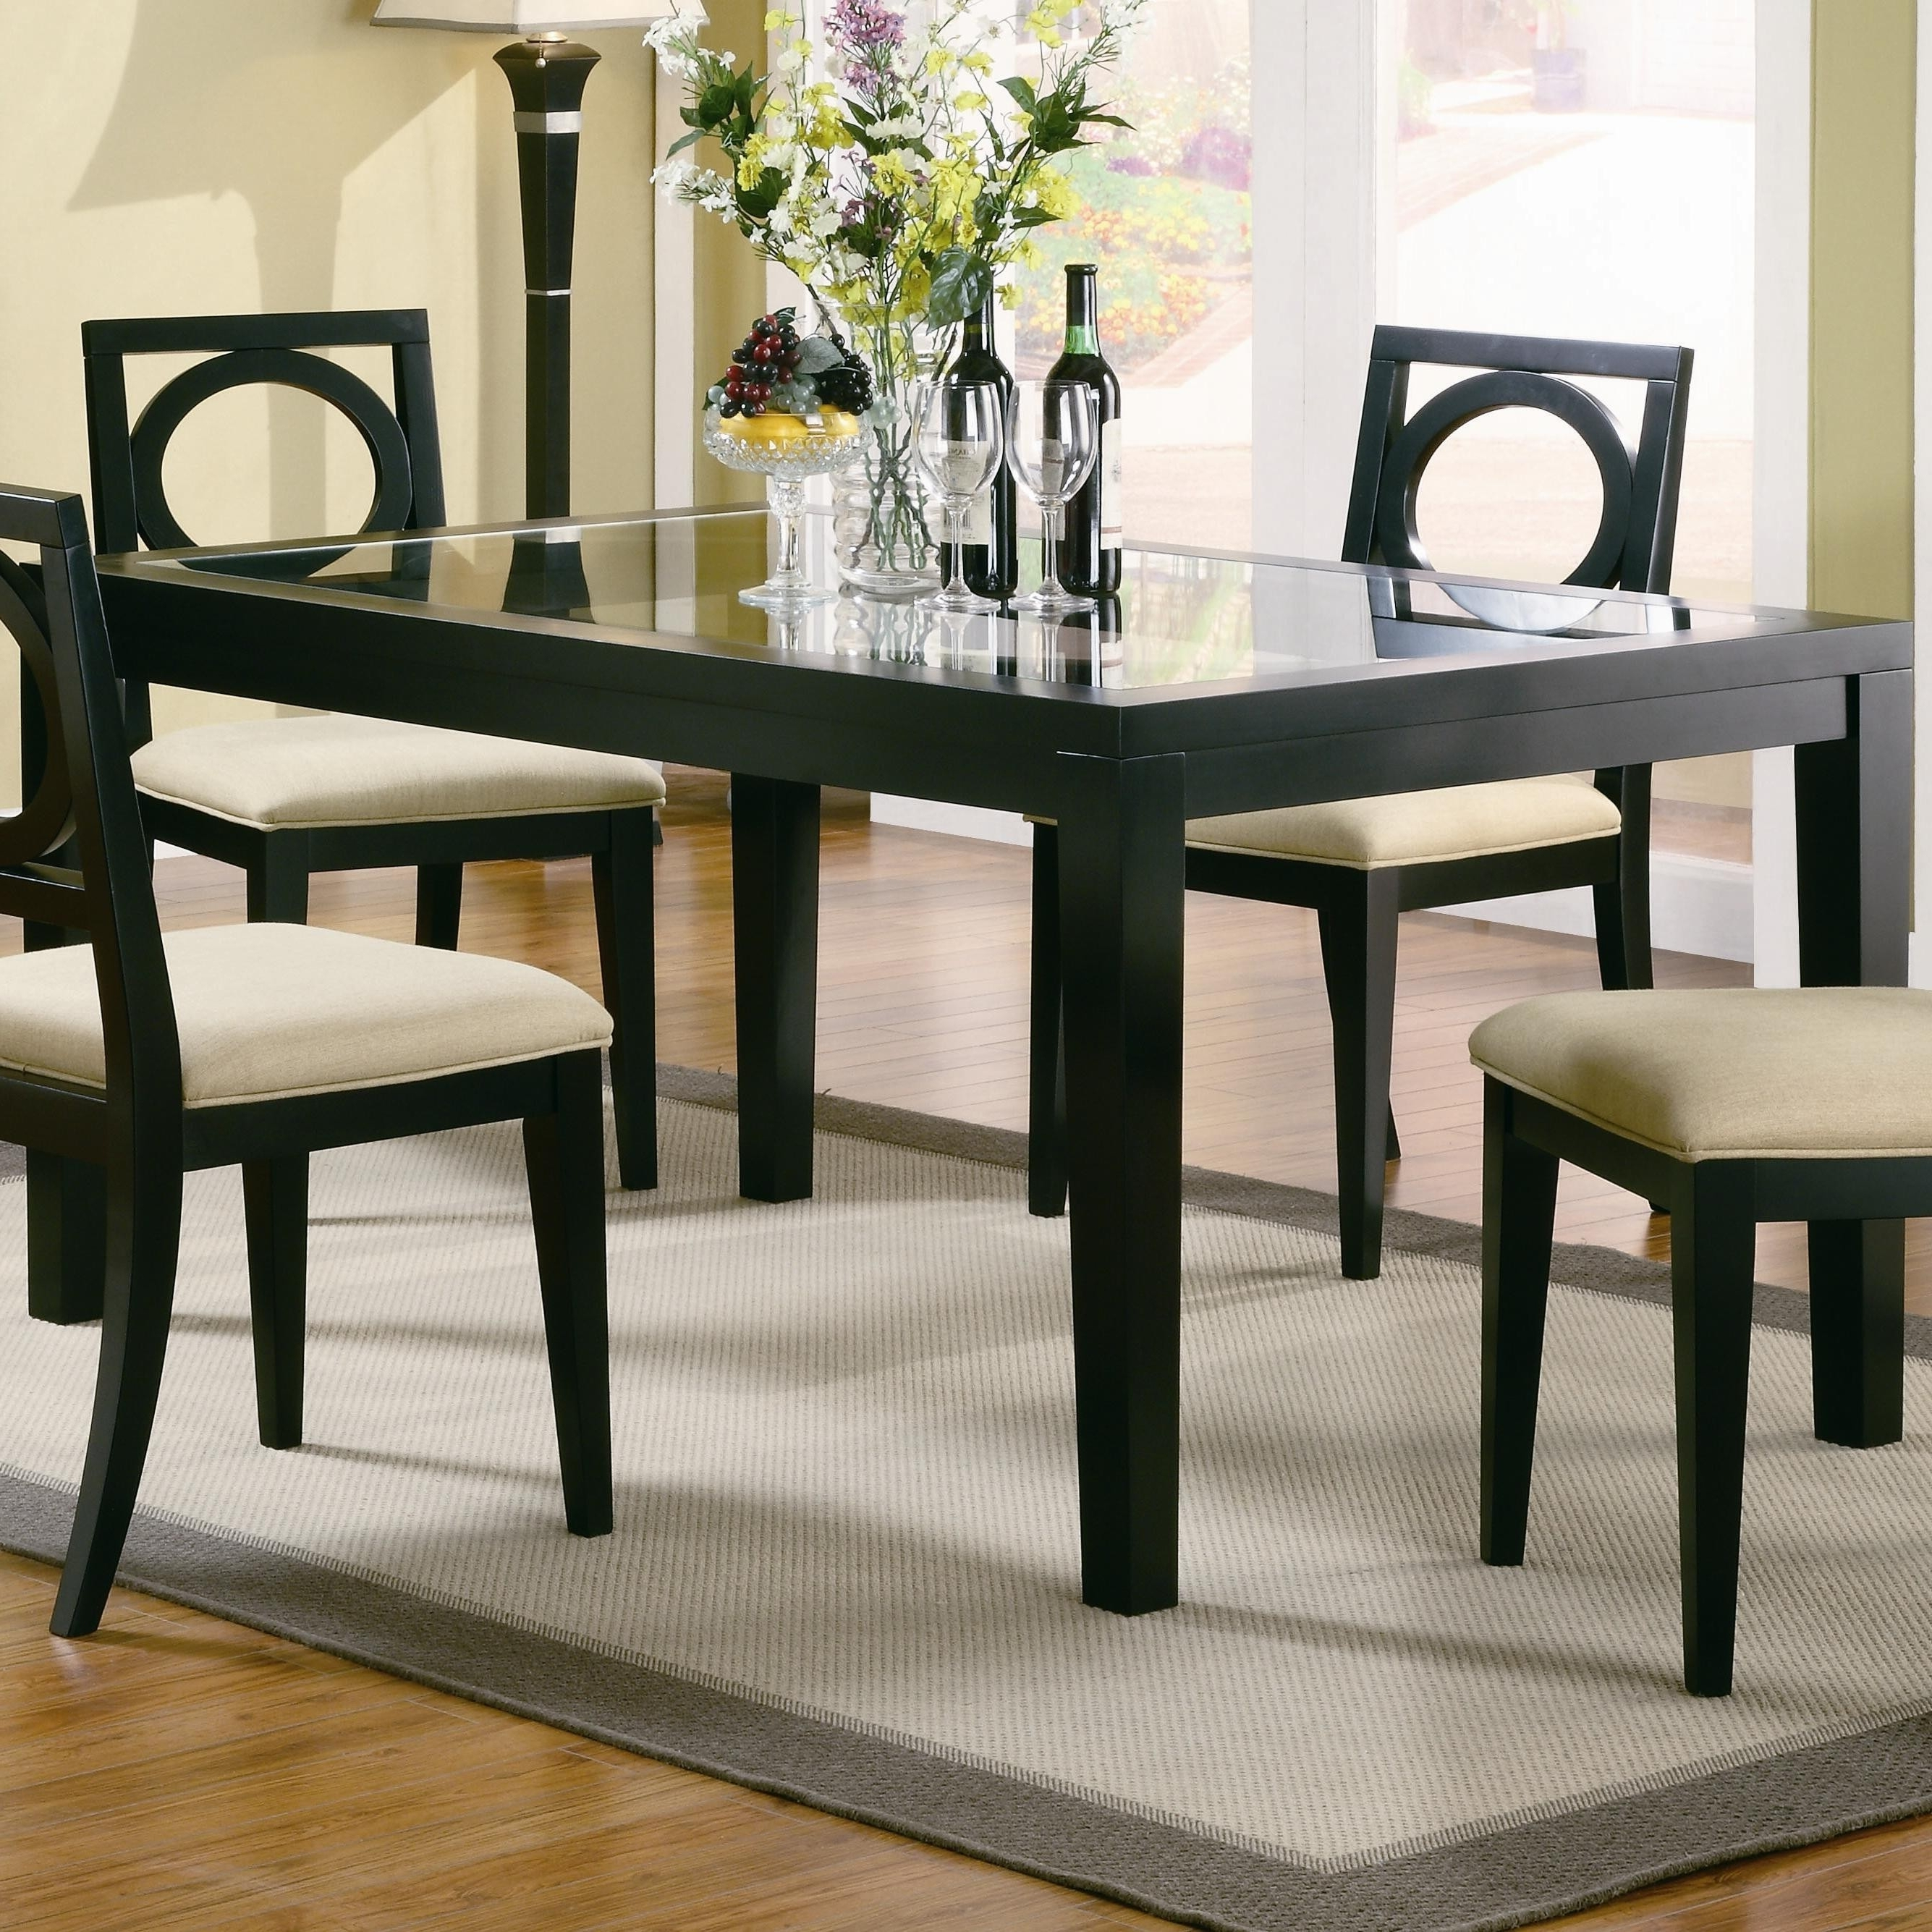 Trendy Glass Dining Tables With Oak Legs Intended For Glass Dining Room Sets Plans – Catpillow (View 25 of 25)